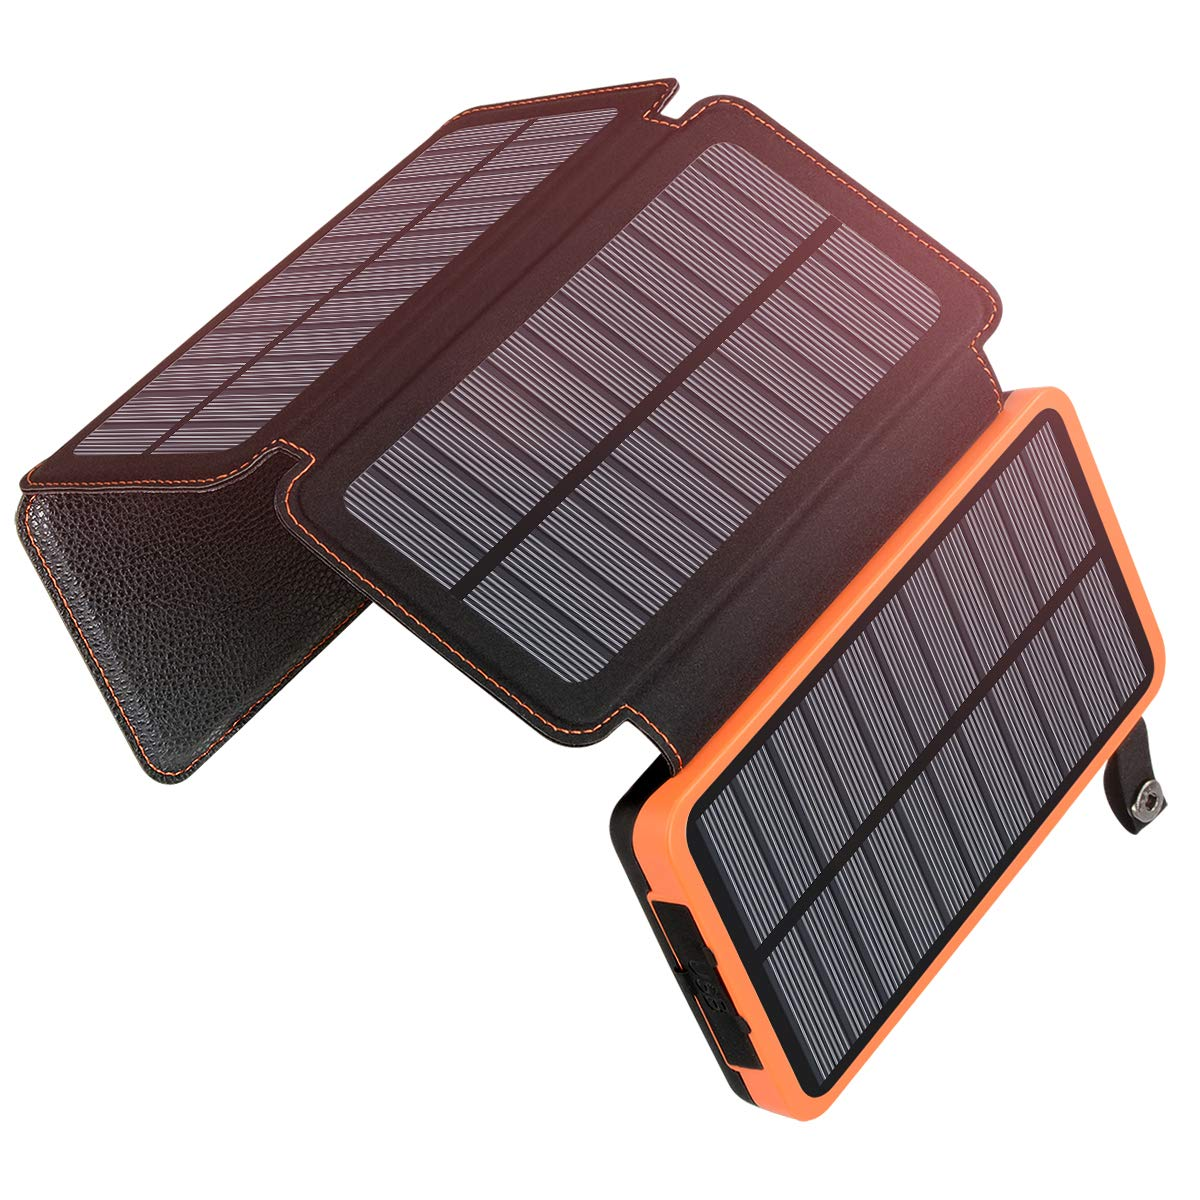 25000mAh Solar Charger ADDTOP Portable Solar Power Bank with Dual 2.1A Outputs Waterproof External Battery Pack Compatible Most Smart Phones, Tablets and More by ADDTOP